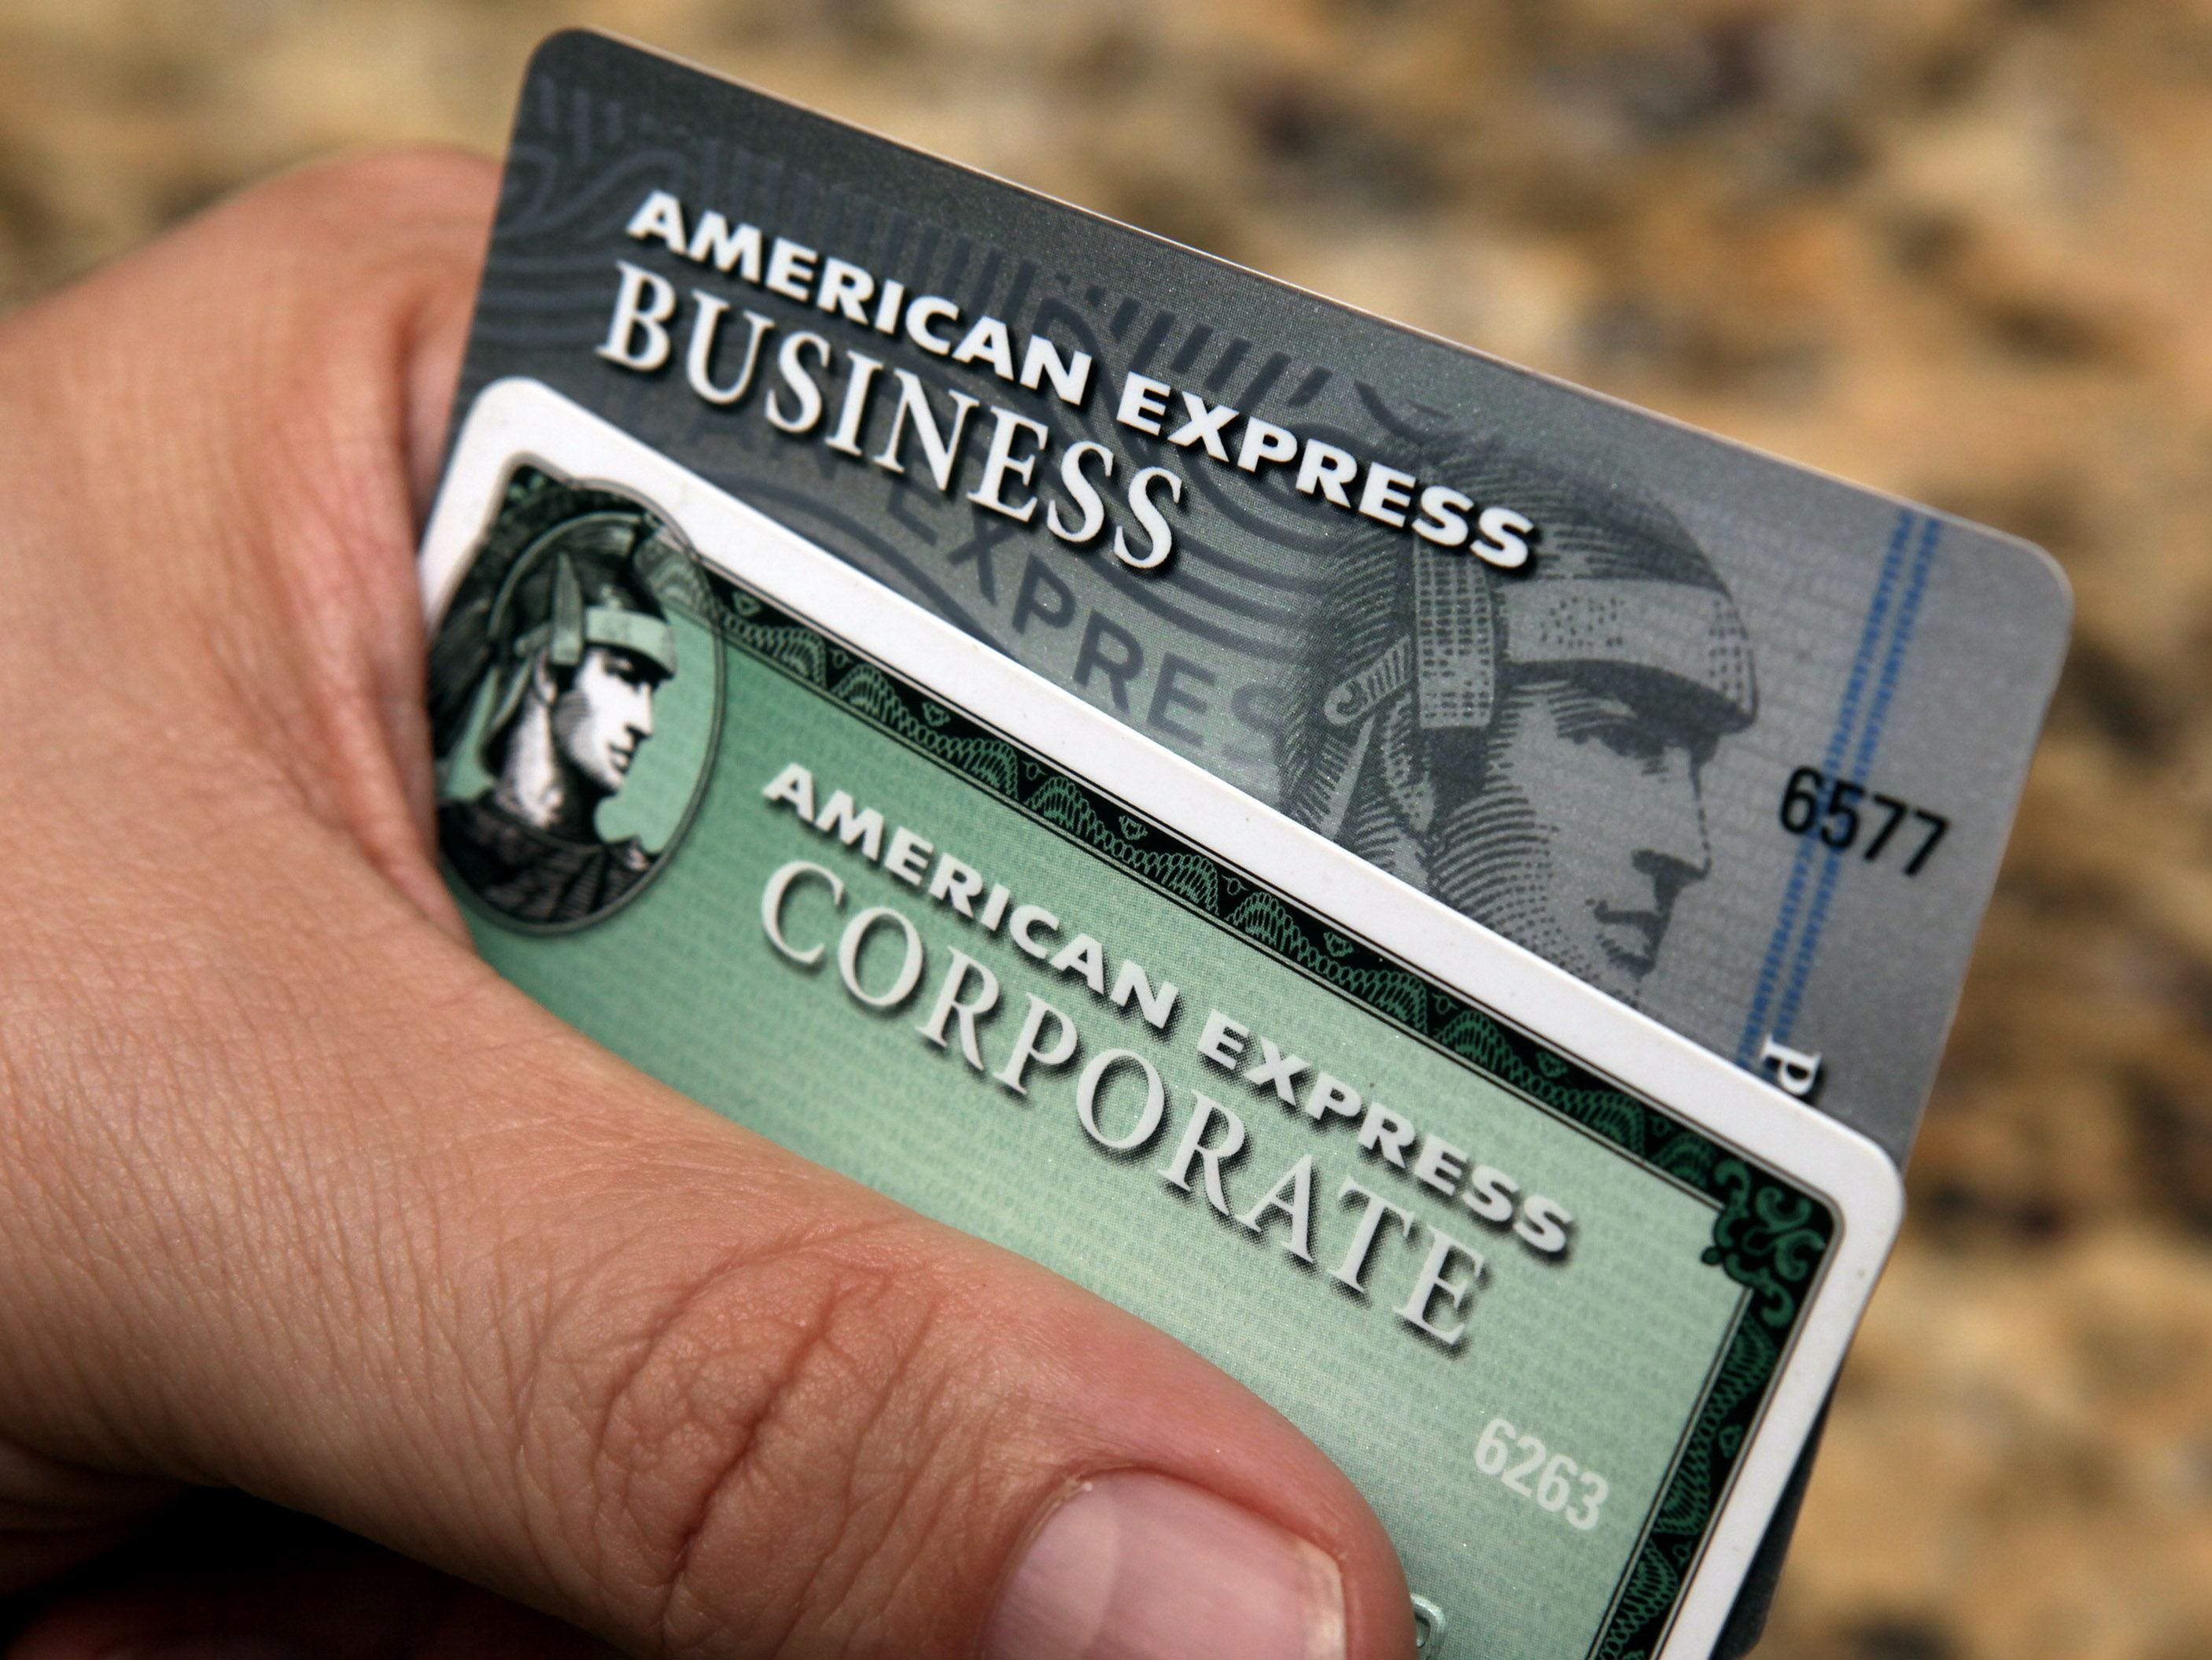 No. 26: American Express Co. | Payment cards, financial services | 2019 employees: 7,000e (estimated by Arizona Republic) | 2018 employees: 7,000 | Ownership: Public | Headquarters: New York | www.americanexpress.com